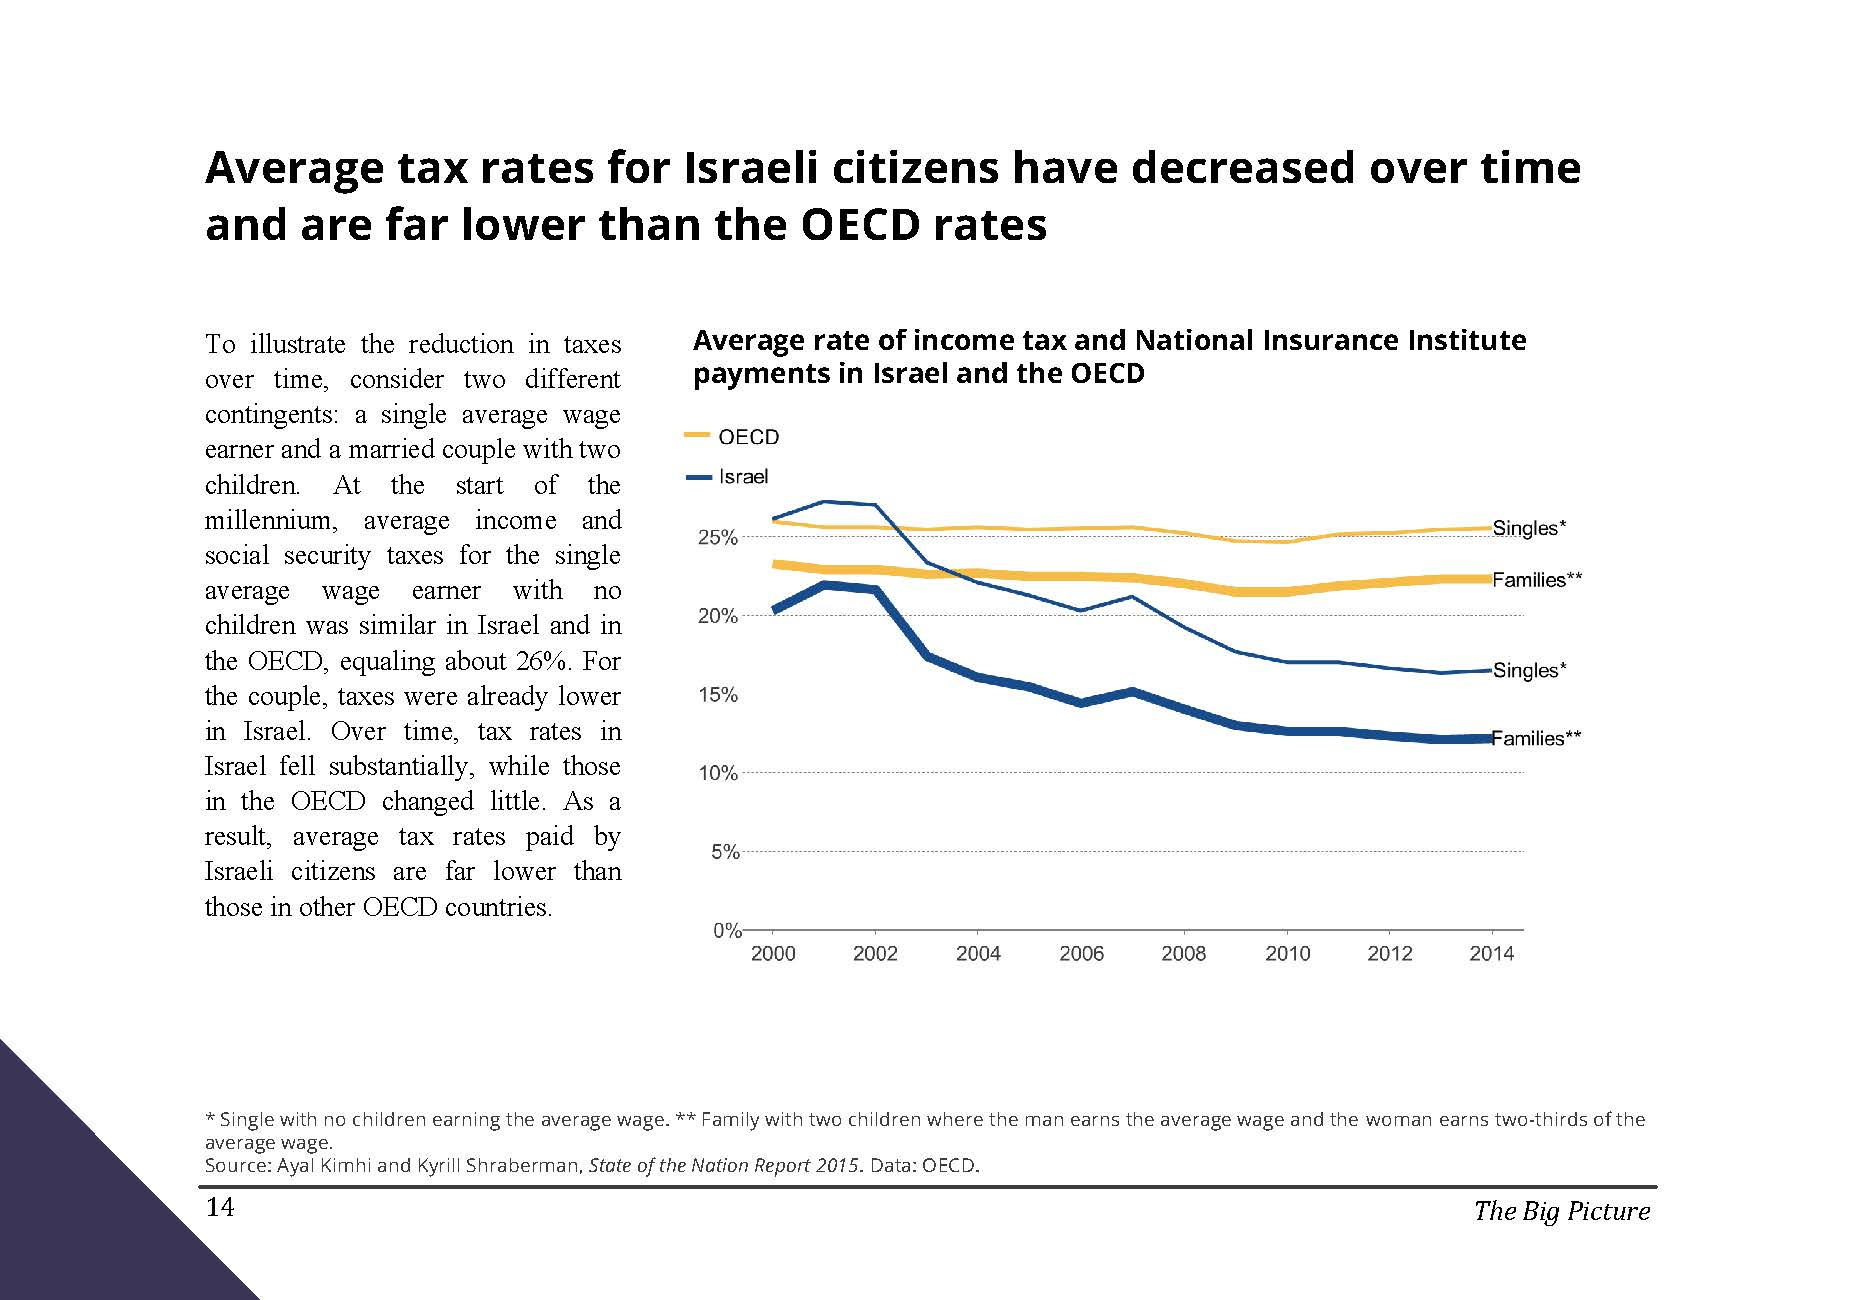 Average tax rates for Israeli citizens have decreased over time and are far lower than the OECD rates